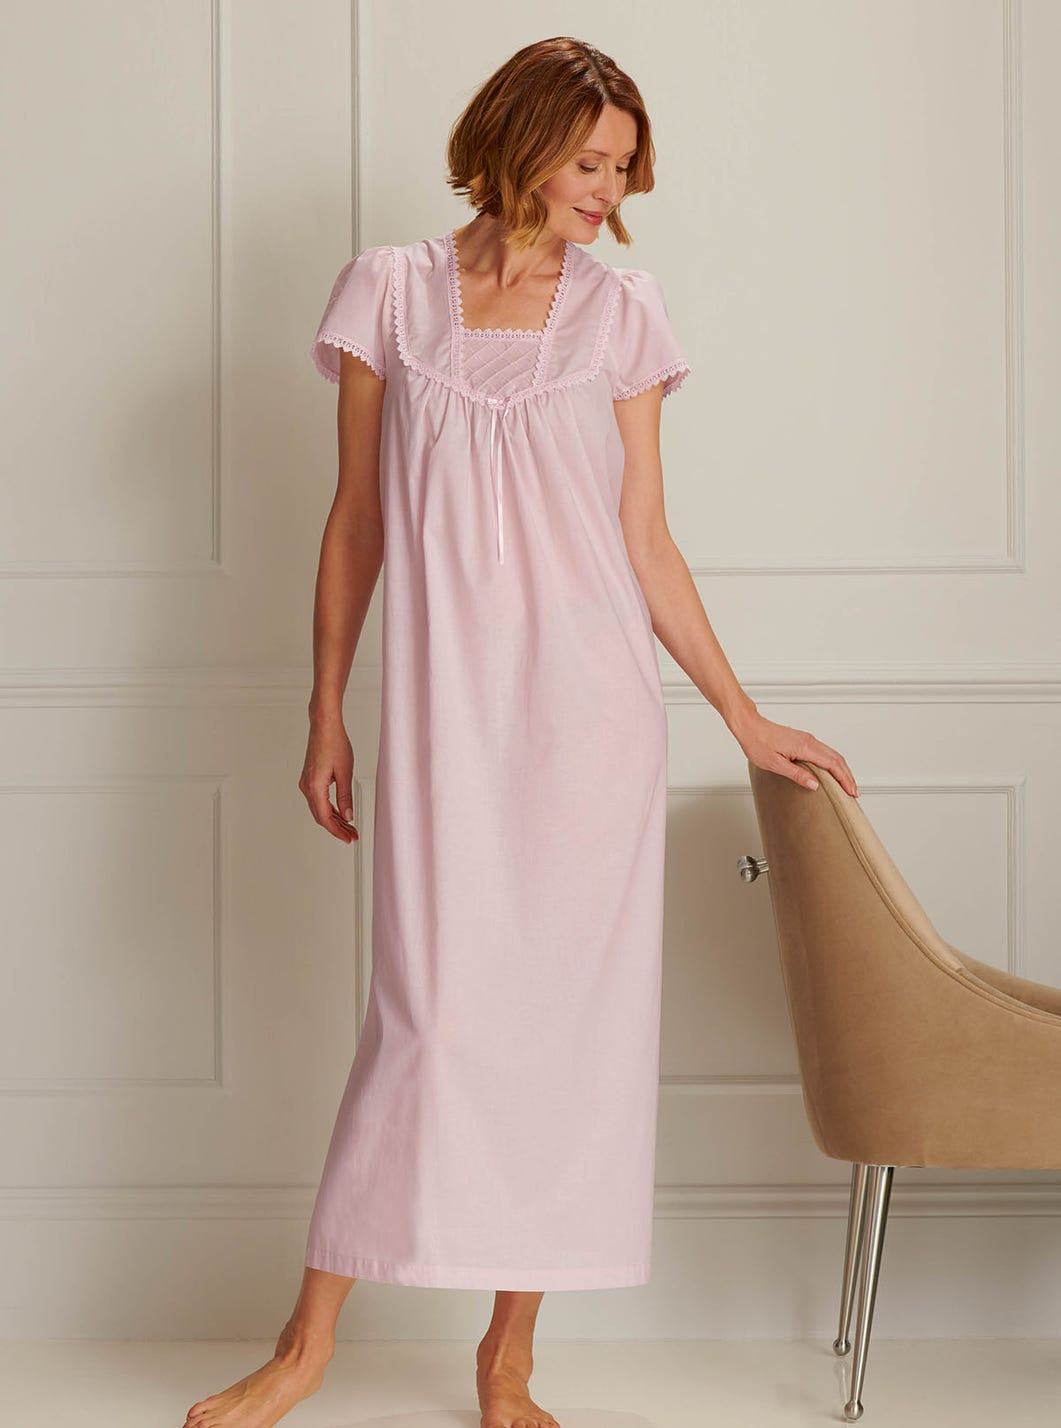 Luxurious Woven Cotton Nightdress